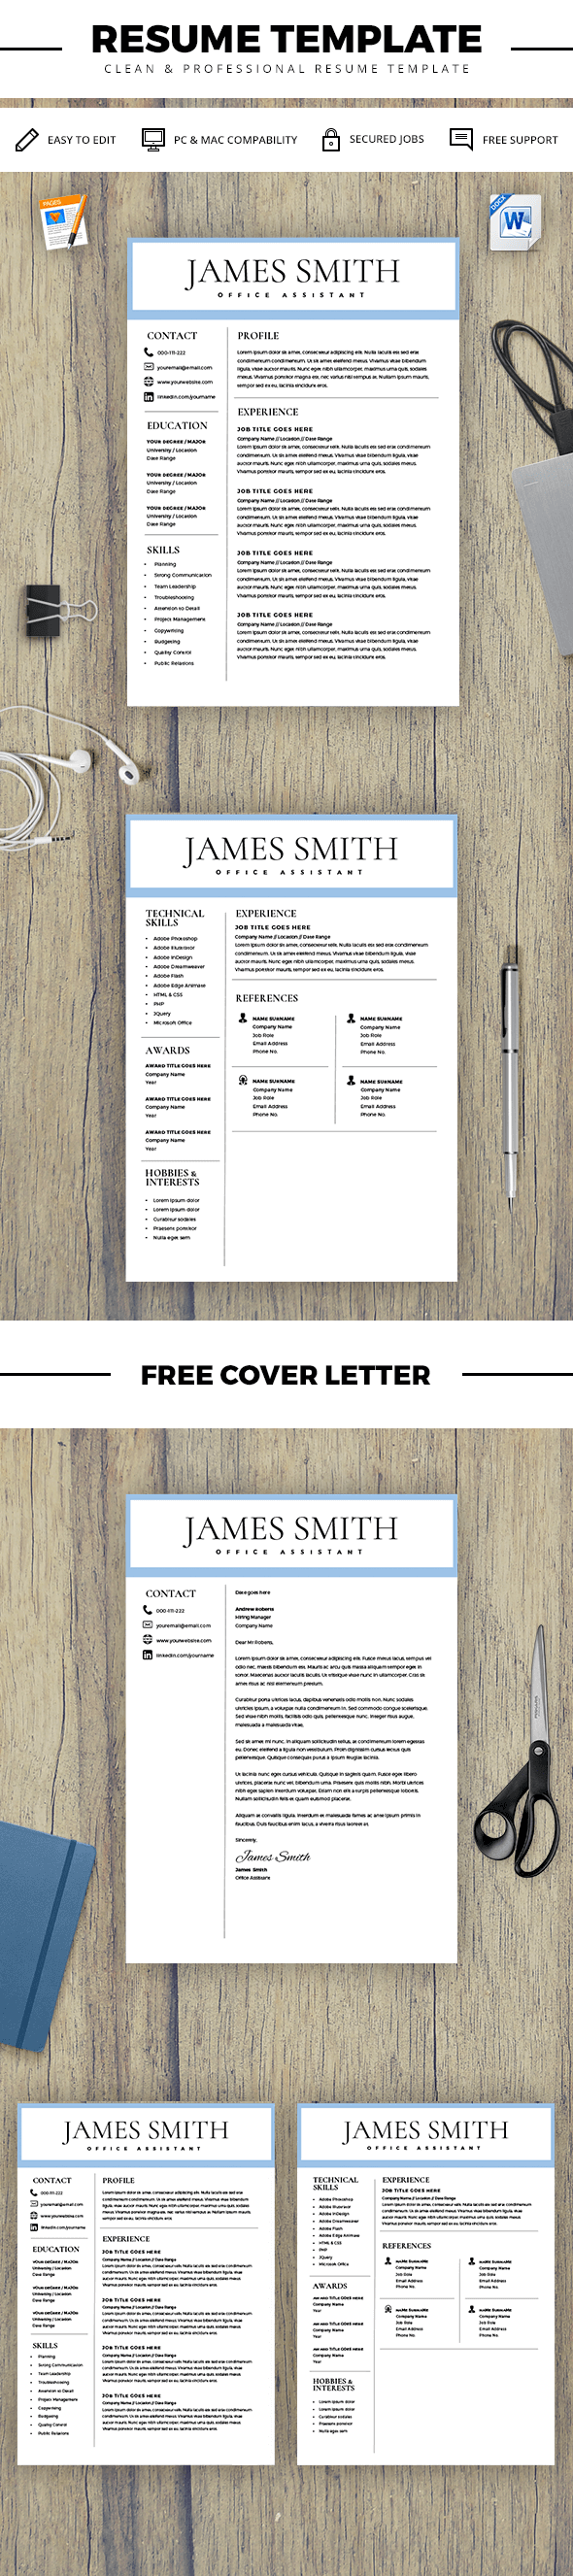 Resume Template for Men - Writer Resume Template for Word & Pages ...